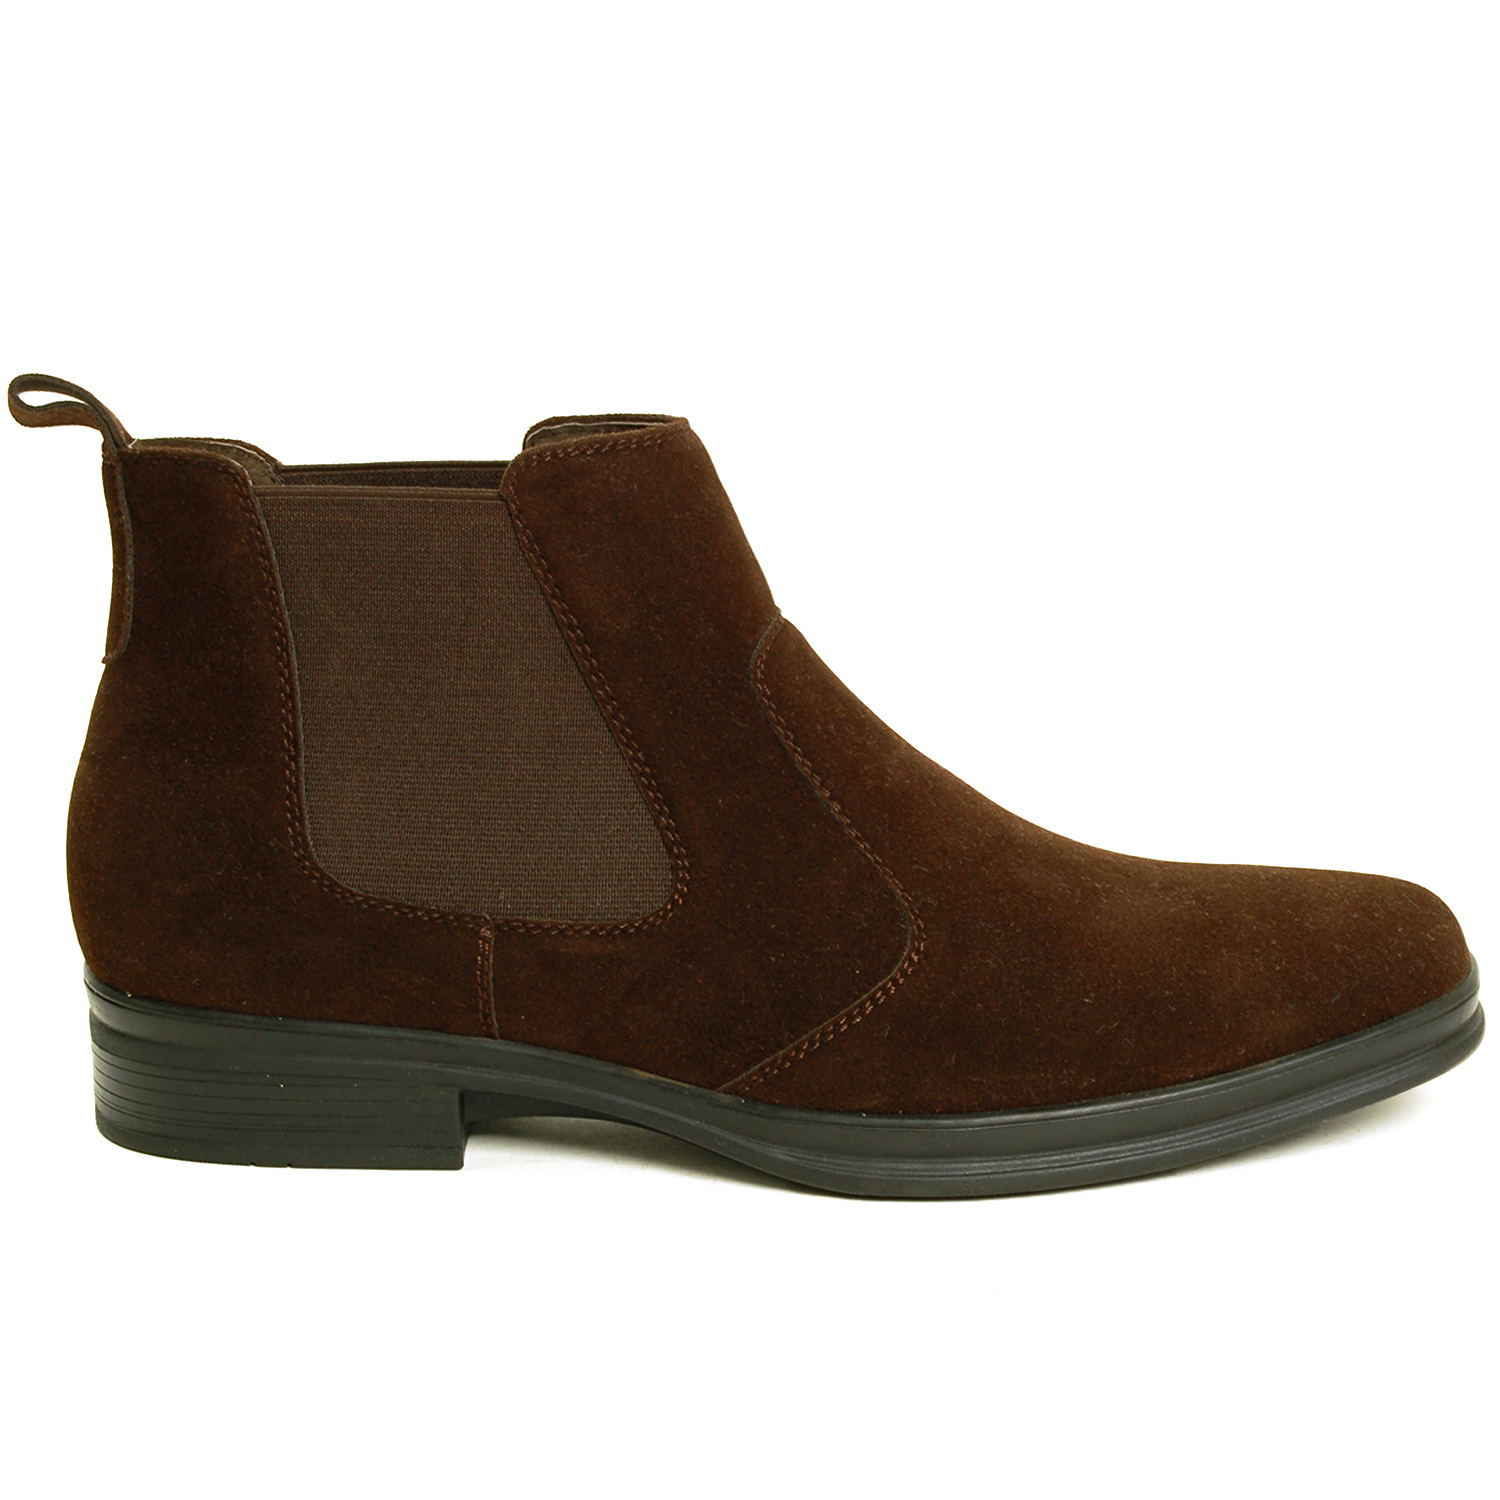 Alpine Swiss Sion Men's Chelsea Boots Dress Ankle Loafer Breathable Suede Lining